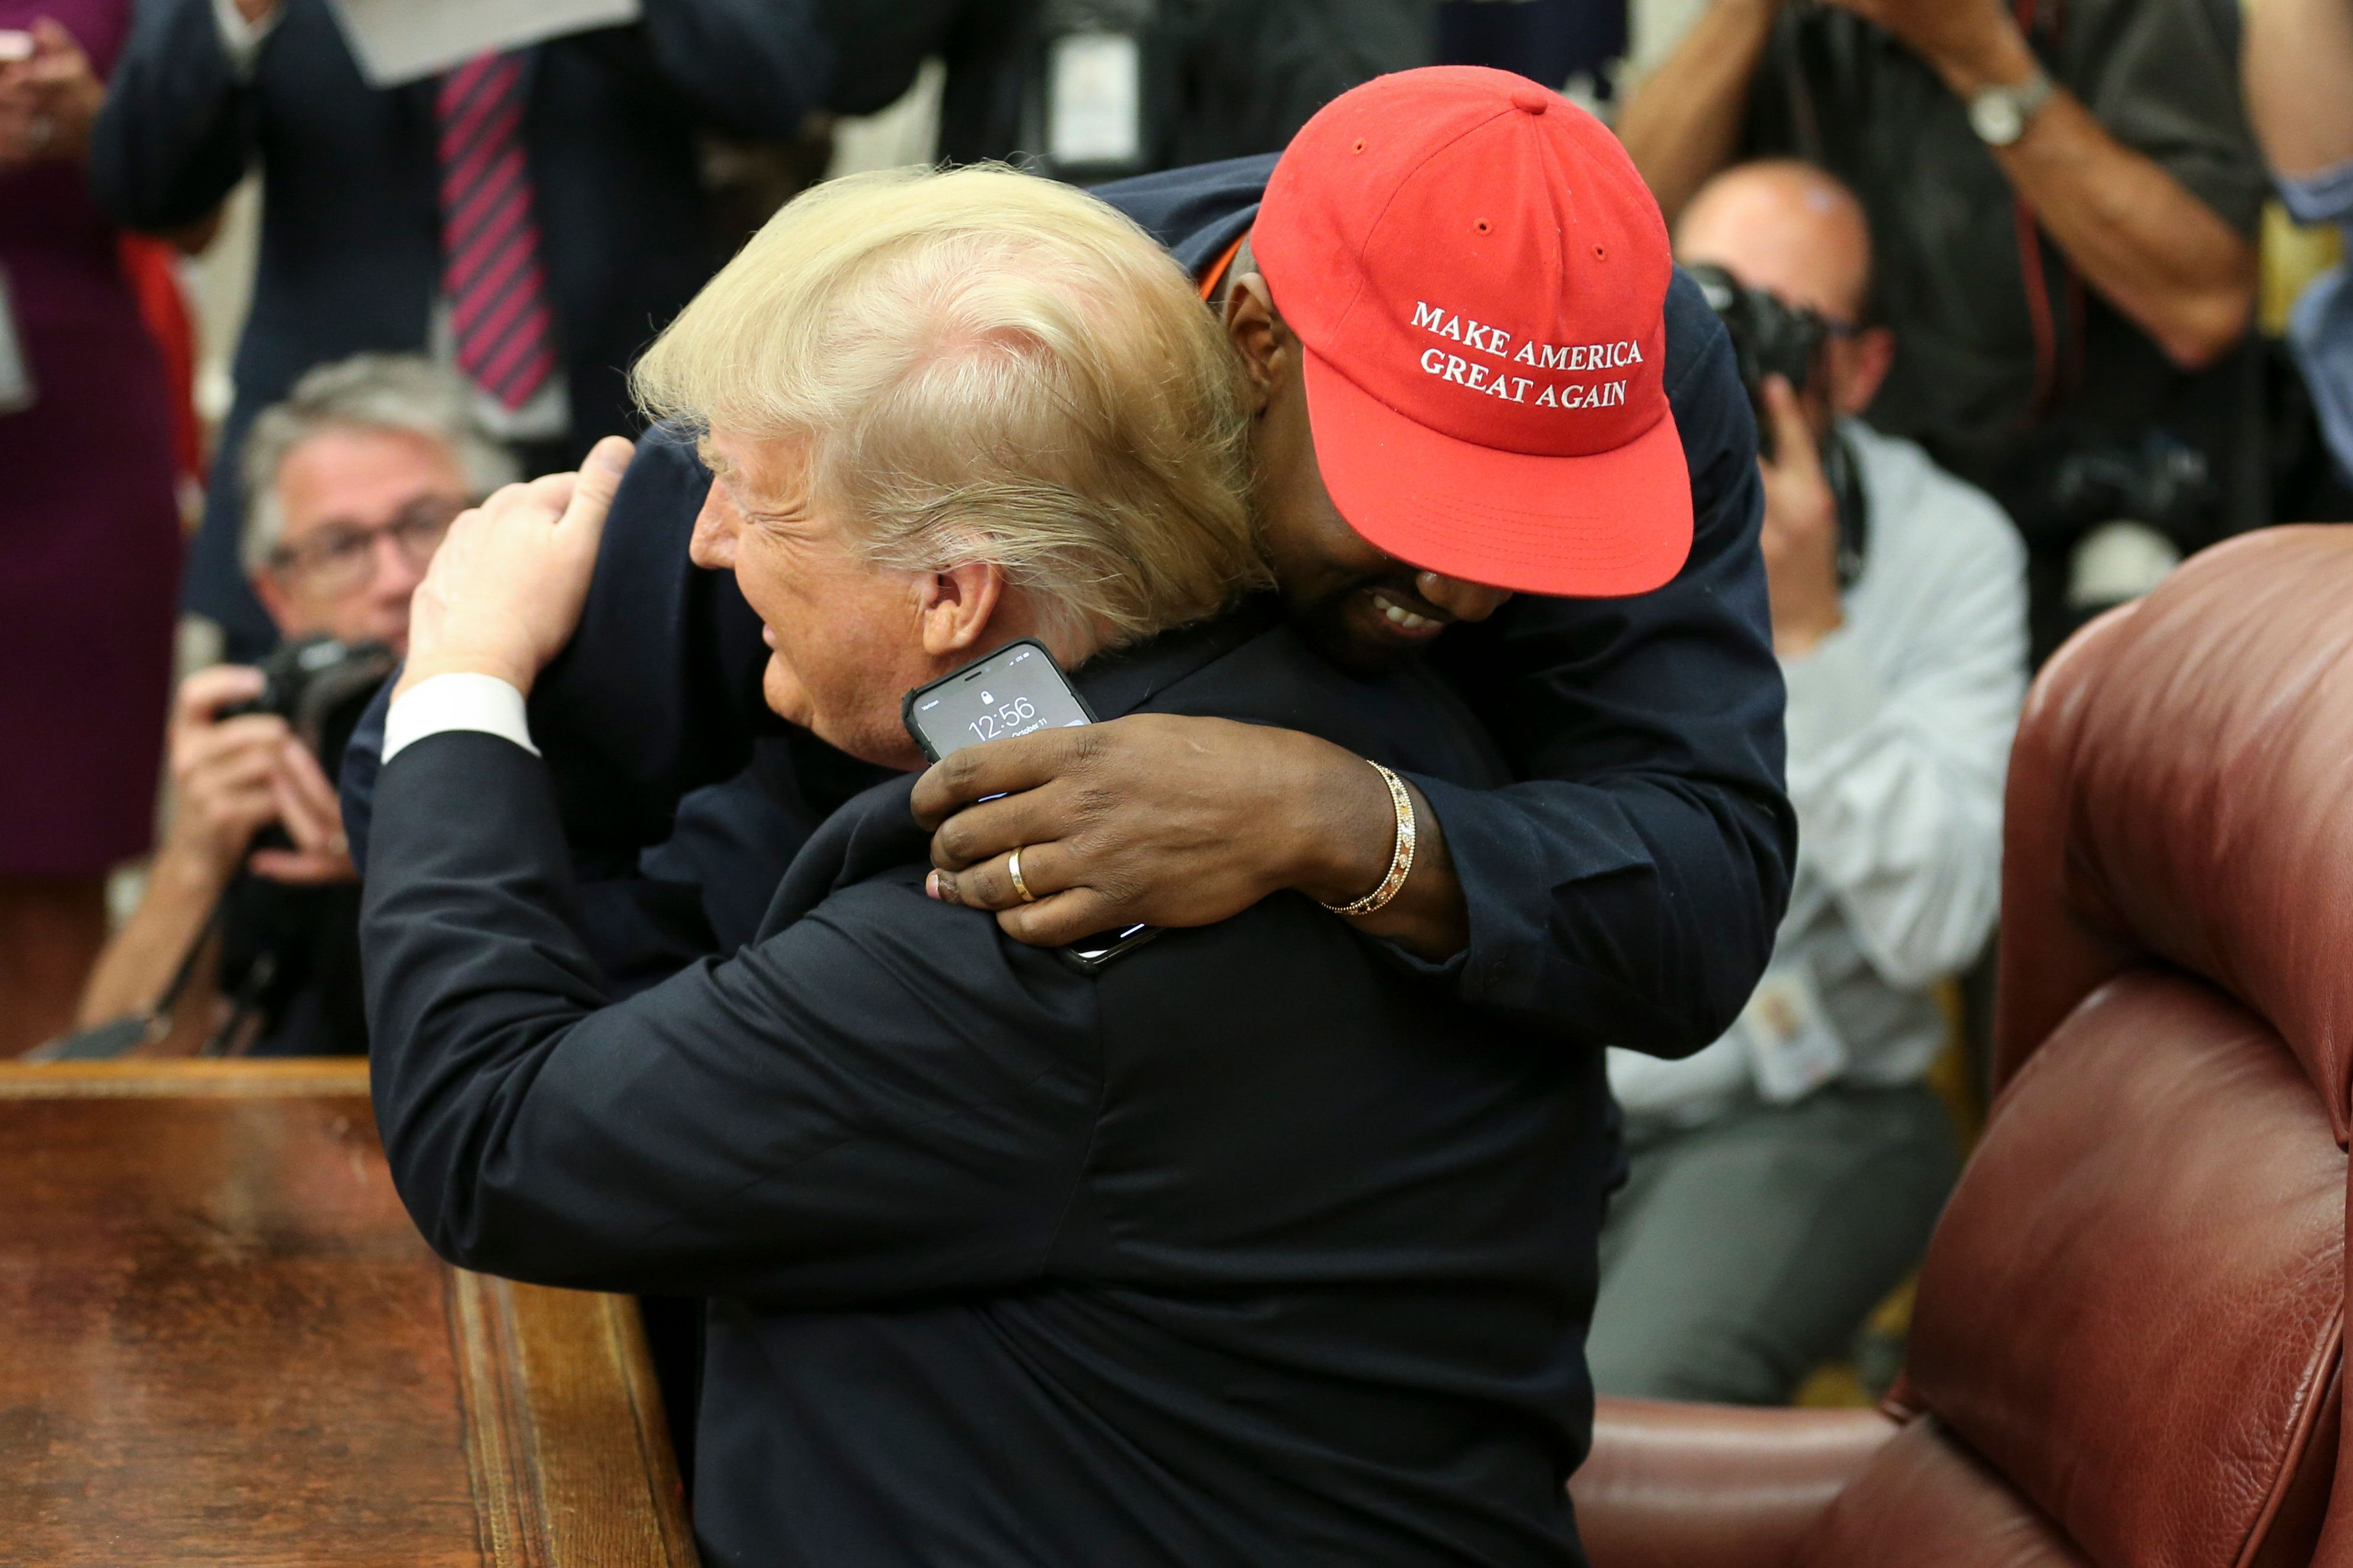 Kanye West Hugs Donald Trump, And Twitter Users Go Berserk